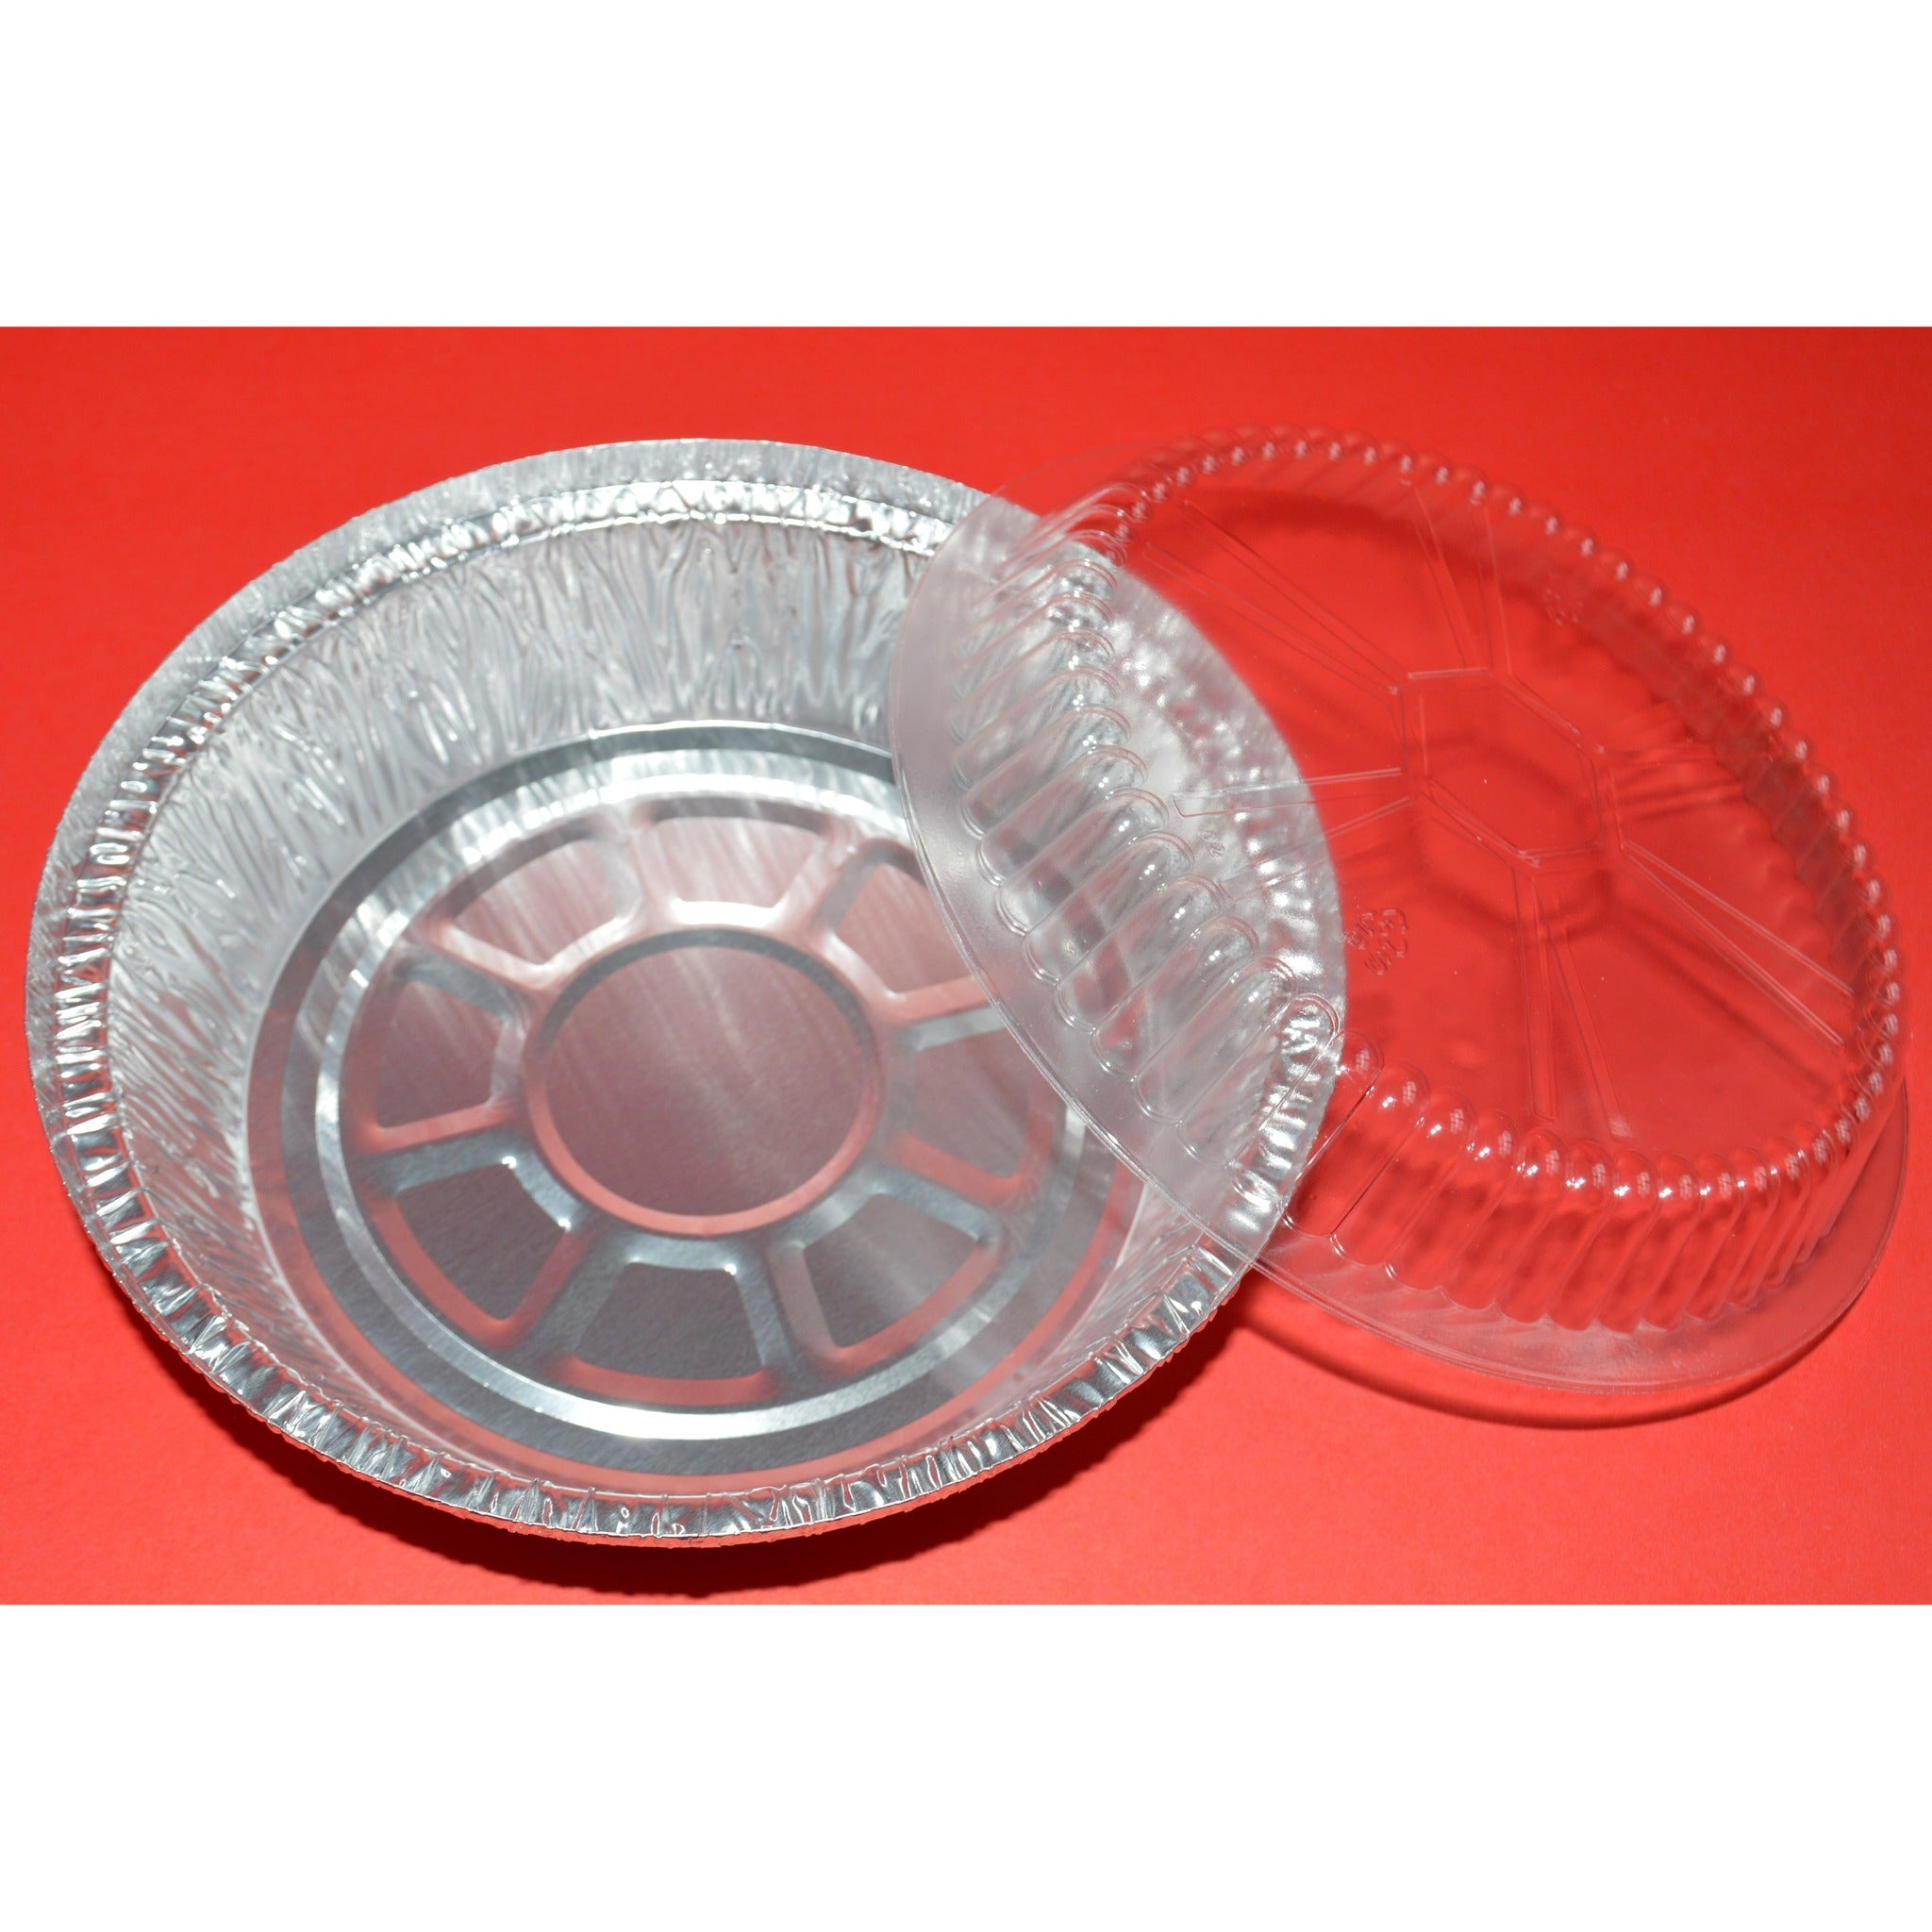 Round Aluminum Container Raised Plastic Lids - 500 Pieces